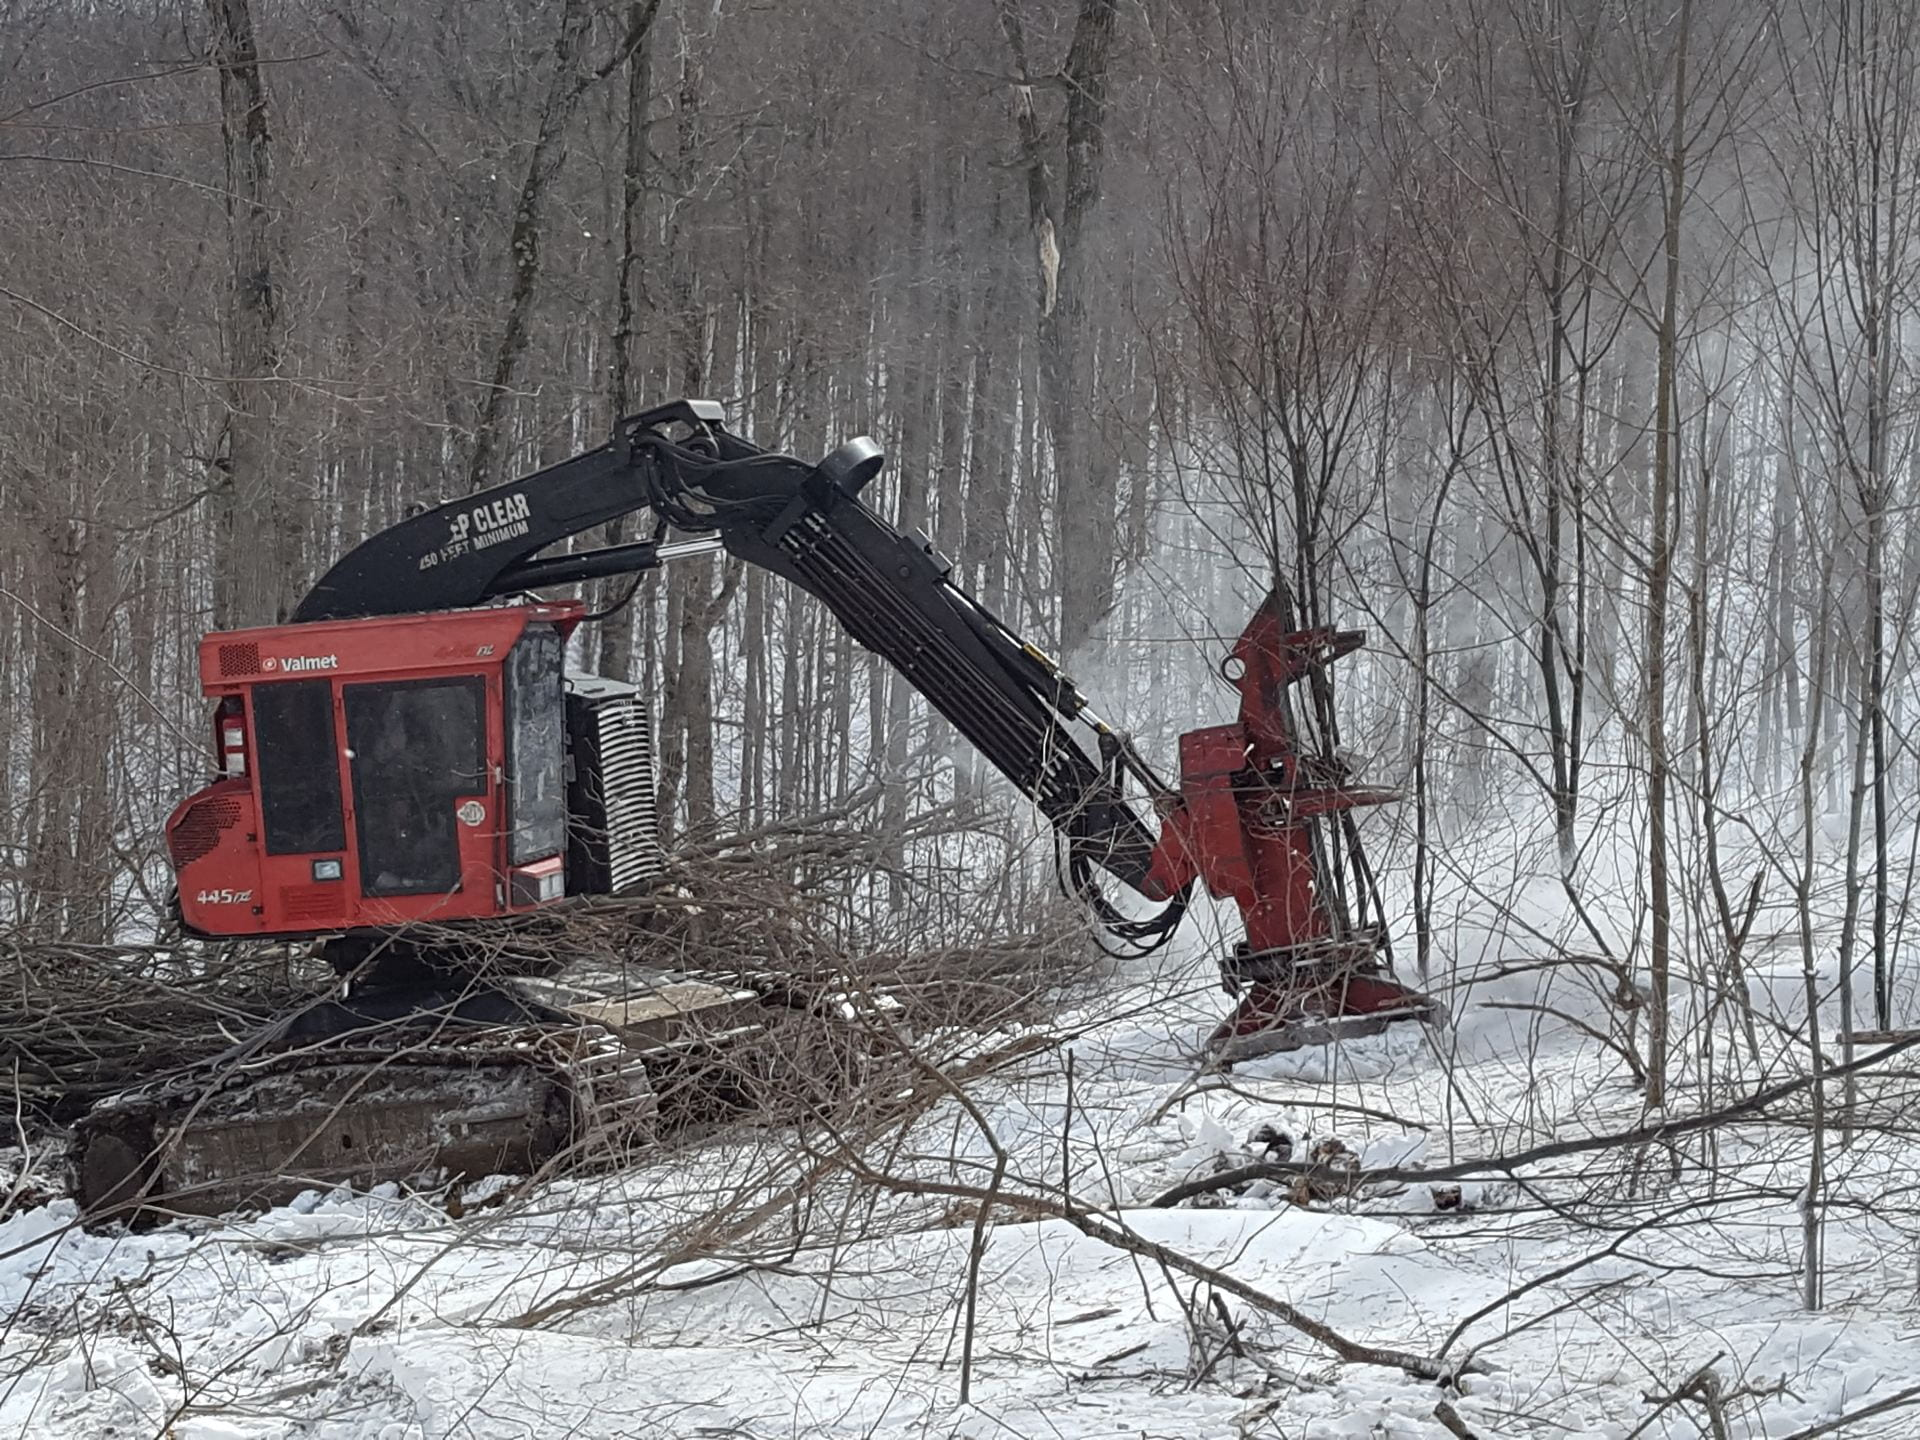 A feller-buncher can efficiently clear the understory, although it is most commonly used in harvesting larger trees. The cutting head allows for stems to be bunched at specific locations.